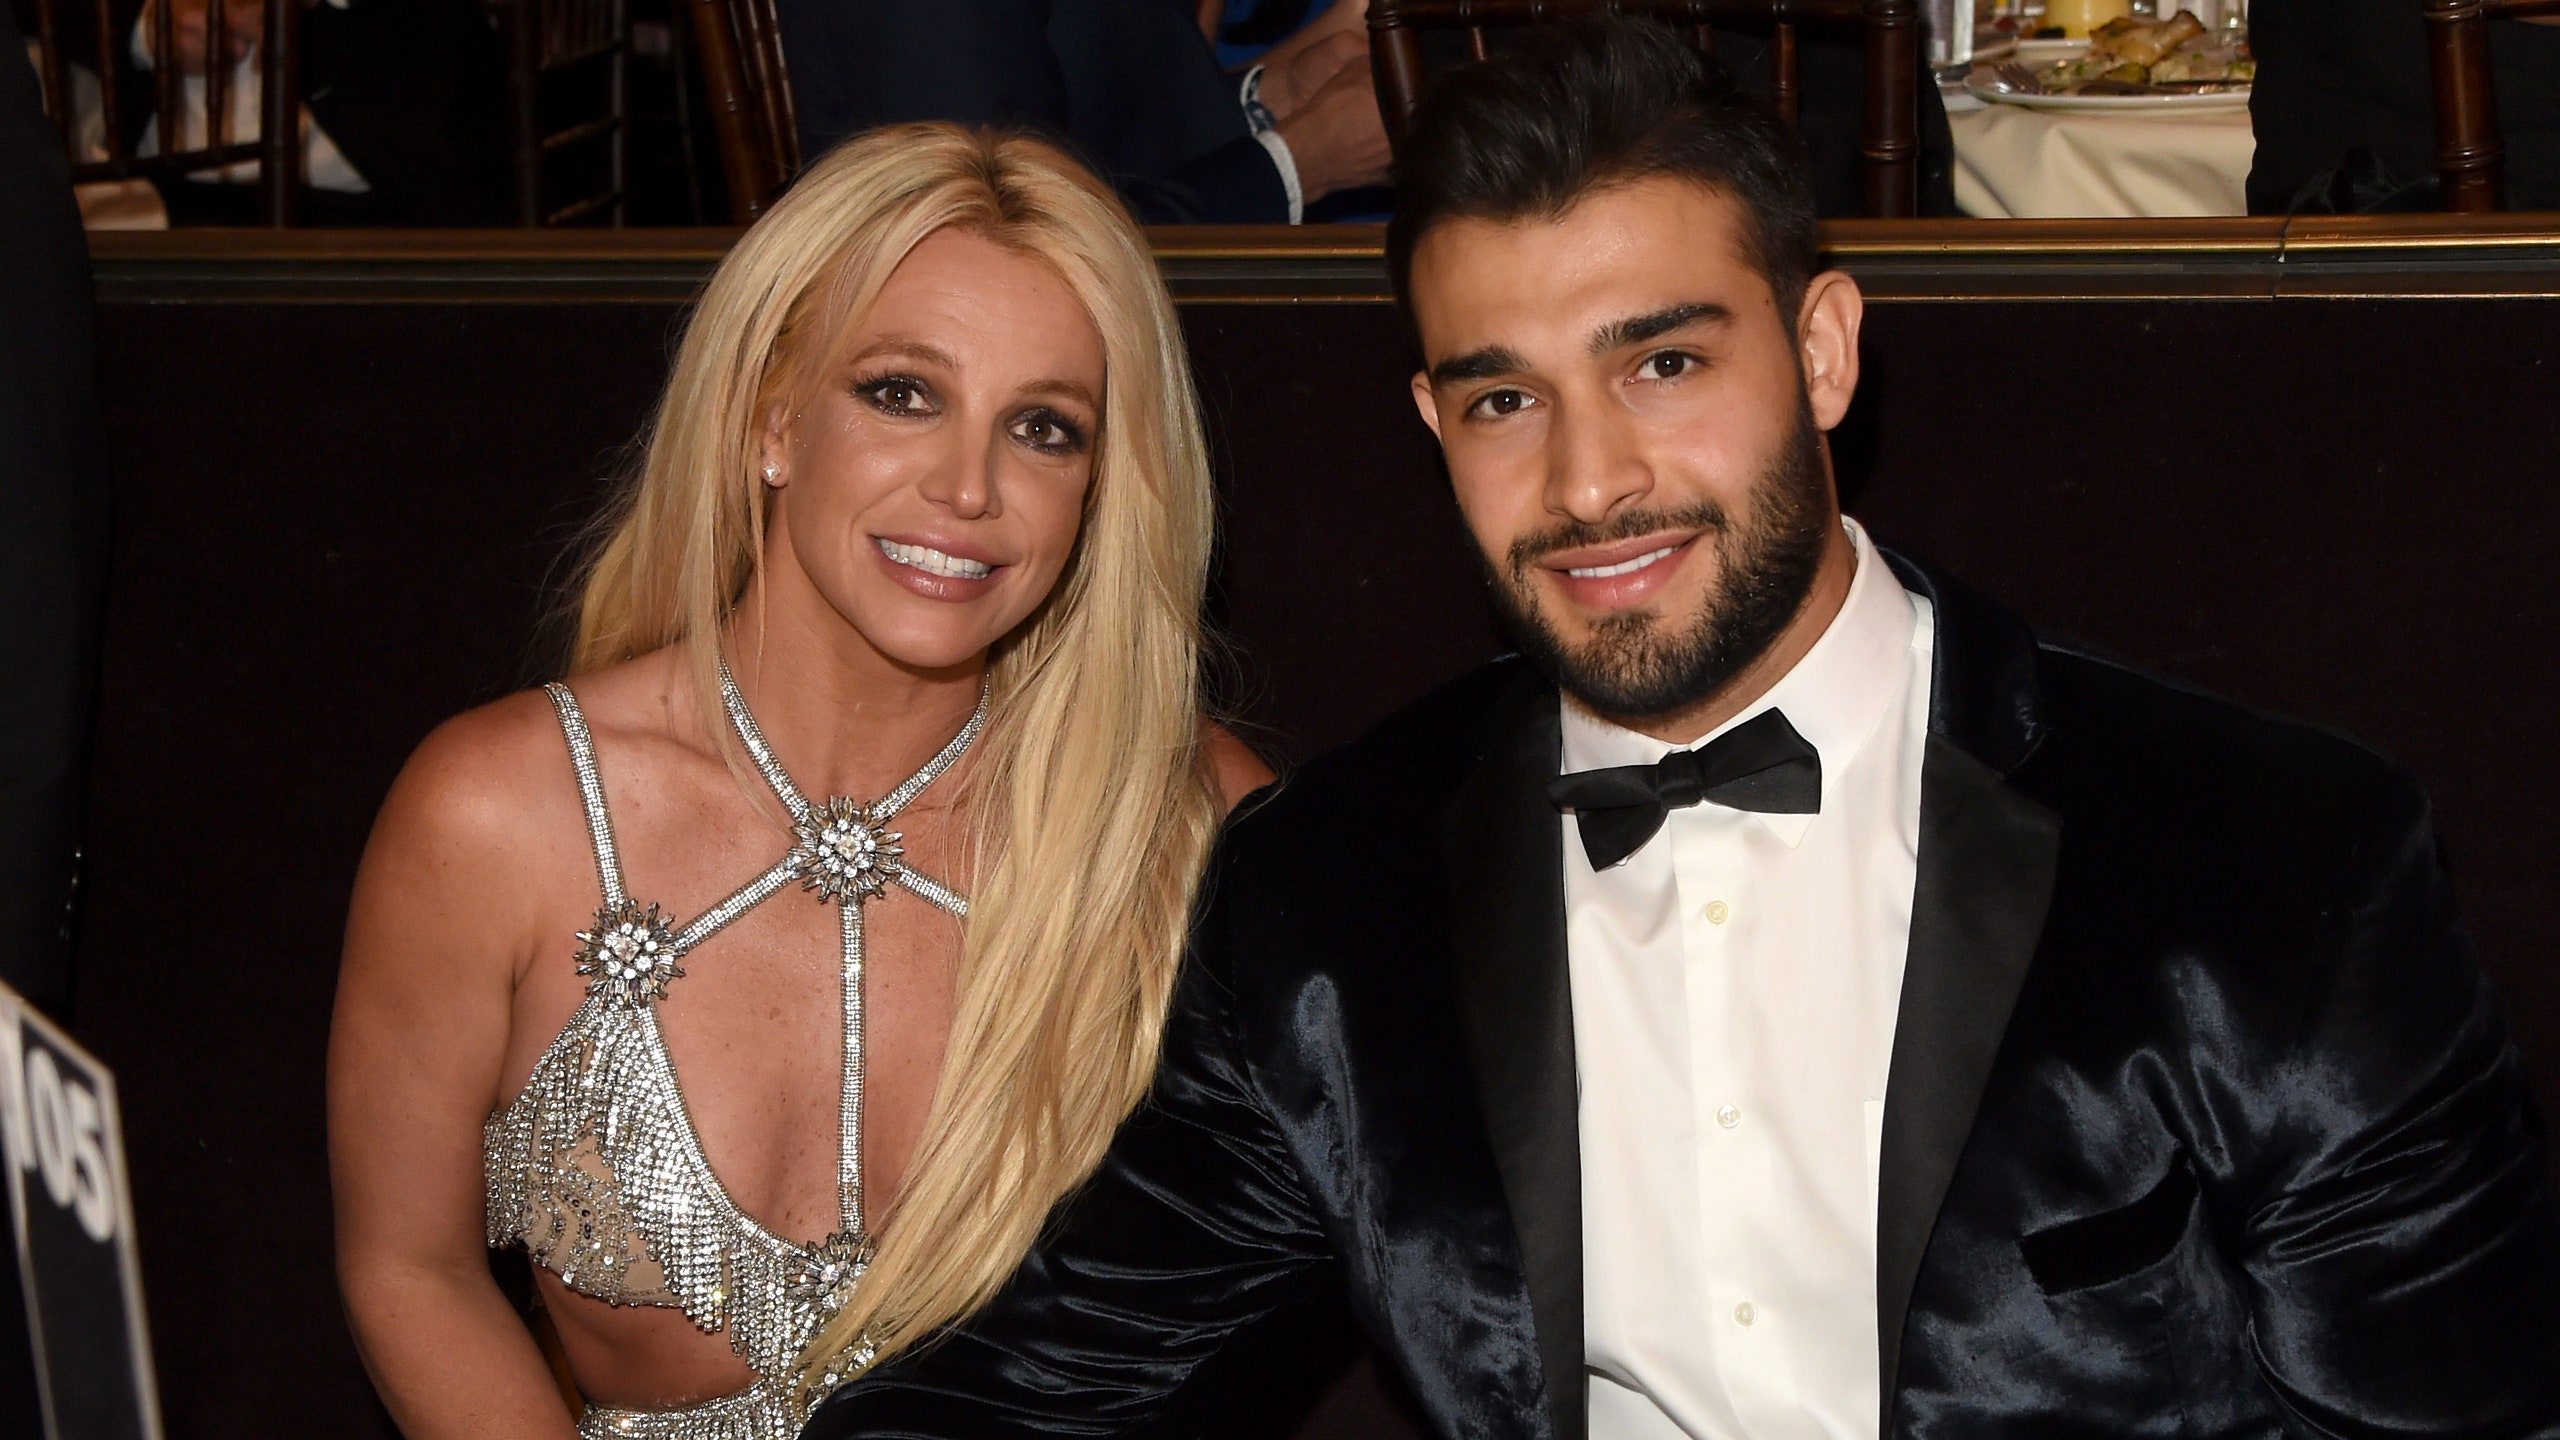 Britney Spears Sam Ashagri Awkward first meeting With Cute nickname and Prenup please!